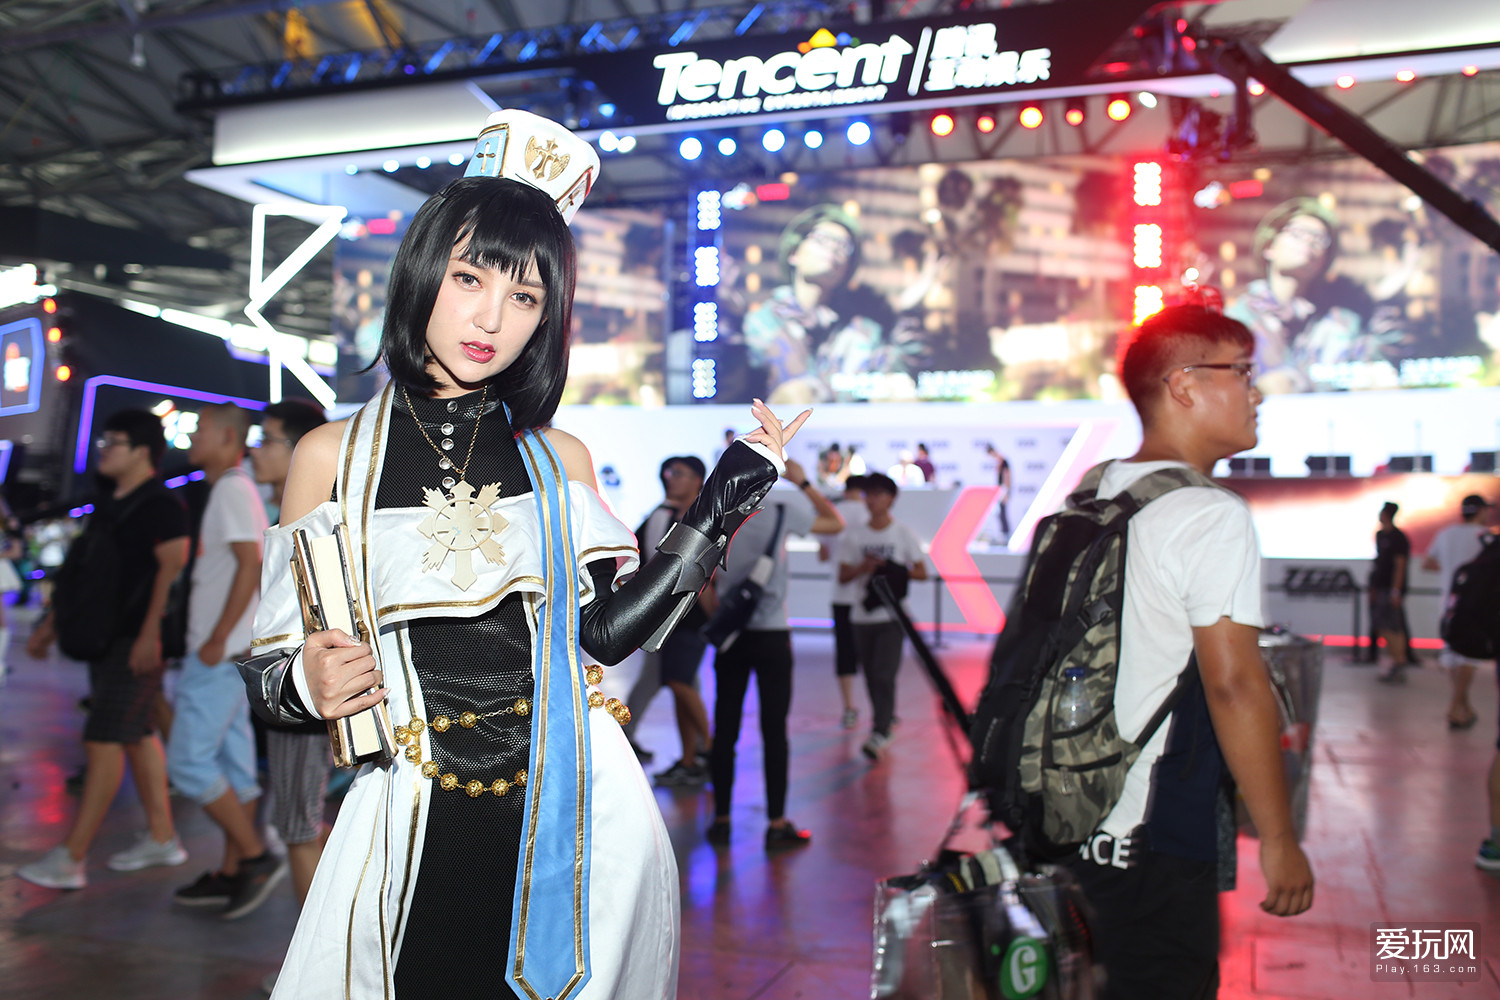 Chinese Girls at Chinajoy 2017 - Photo 2